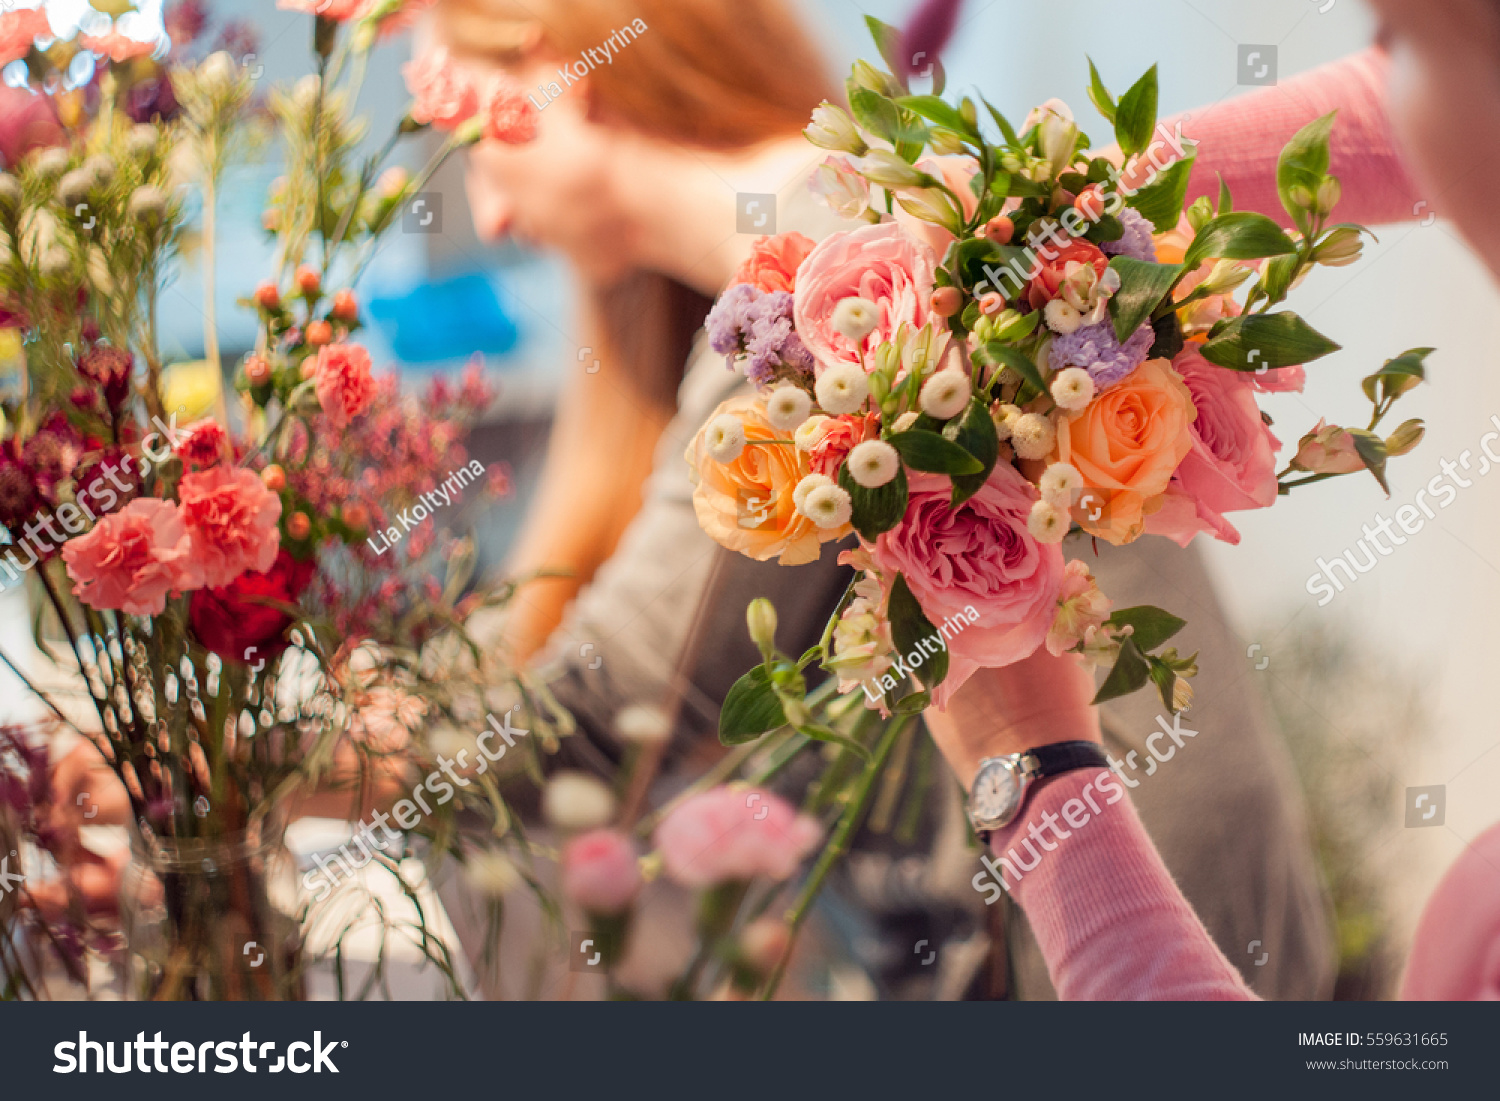 Workshop florist making bouquets flower arrangements stock photo workshop florist making bouquets and flower arrangements woman collecting a bouquet of roses izmirmasajfo